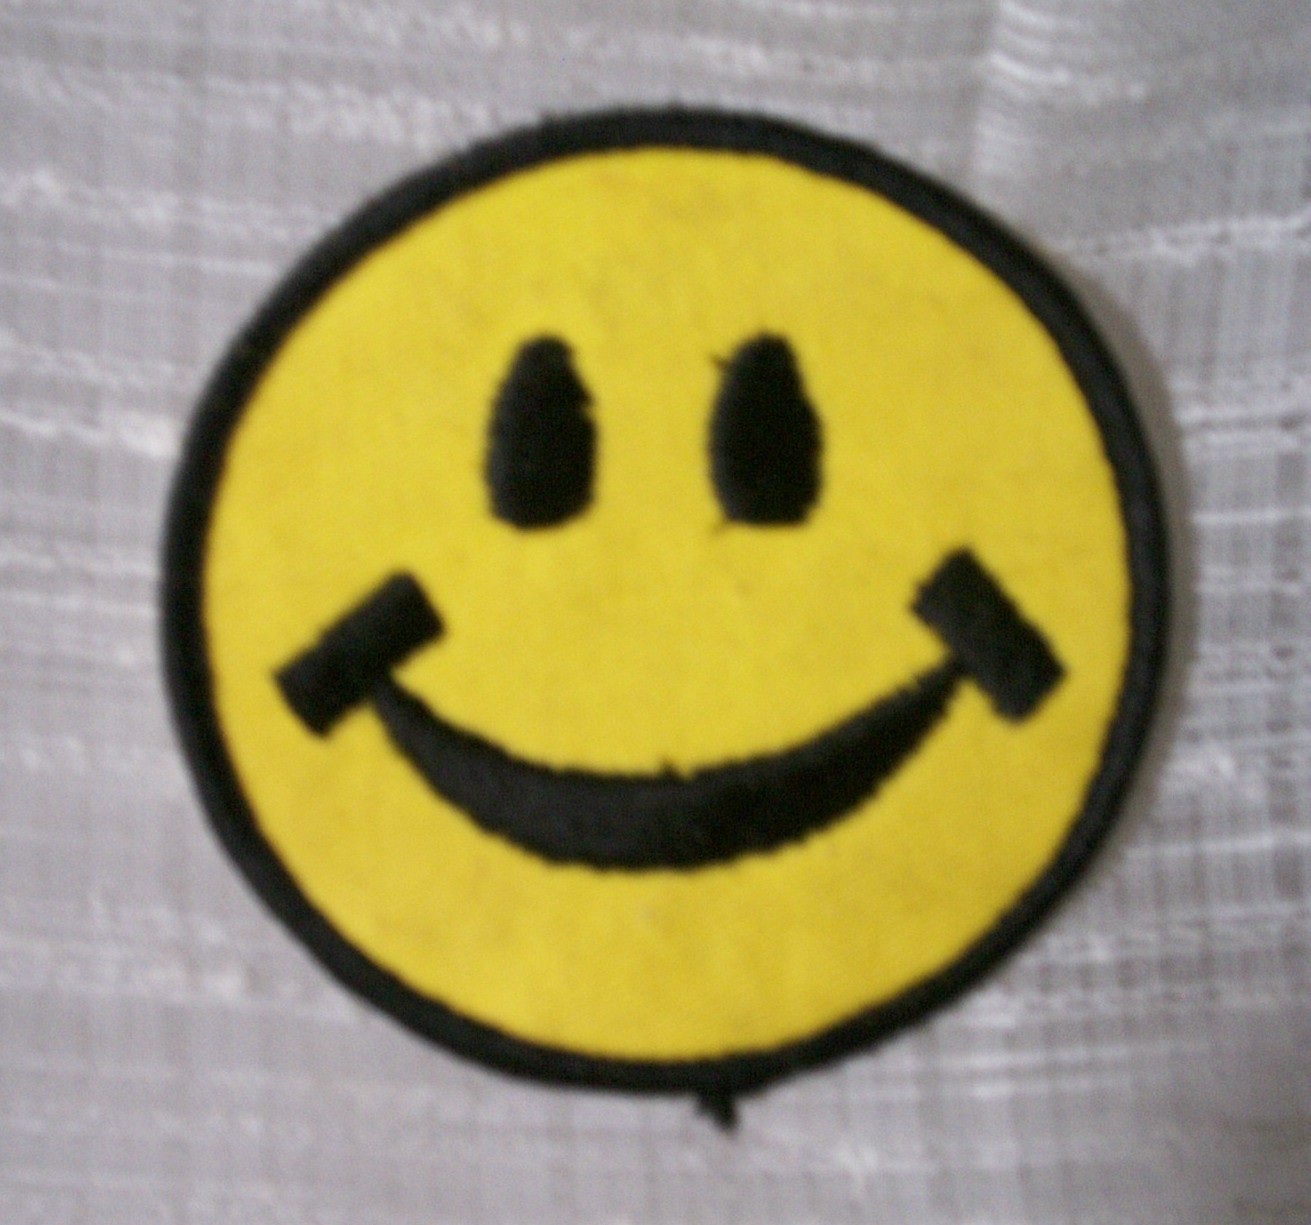 The history of acid house smiley face history good or evil for Acid house history